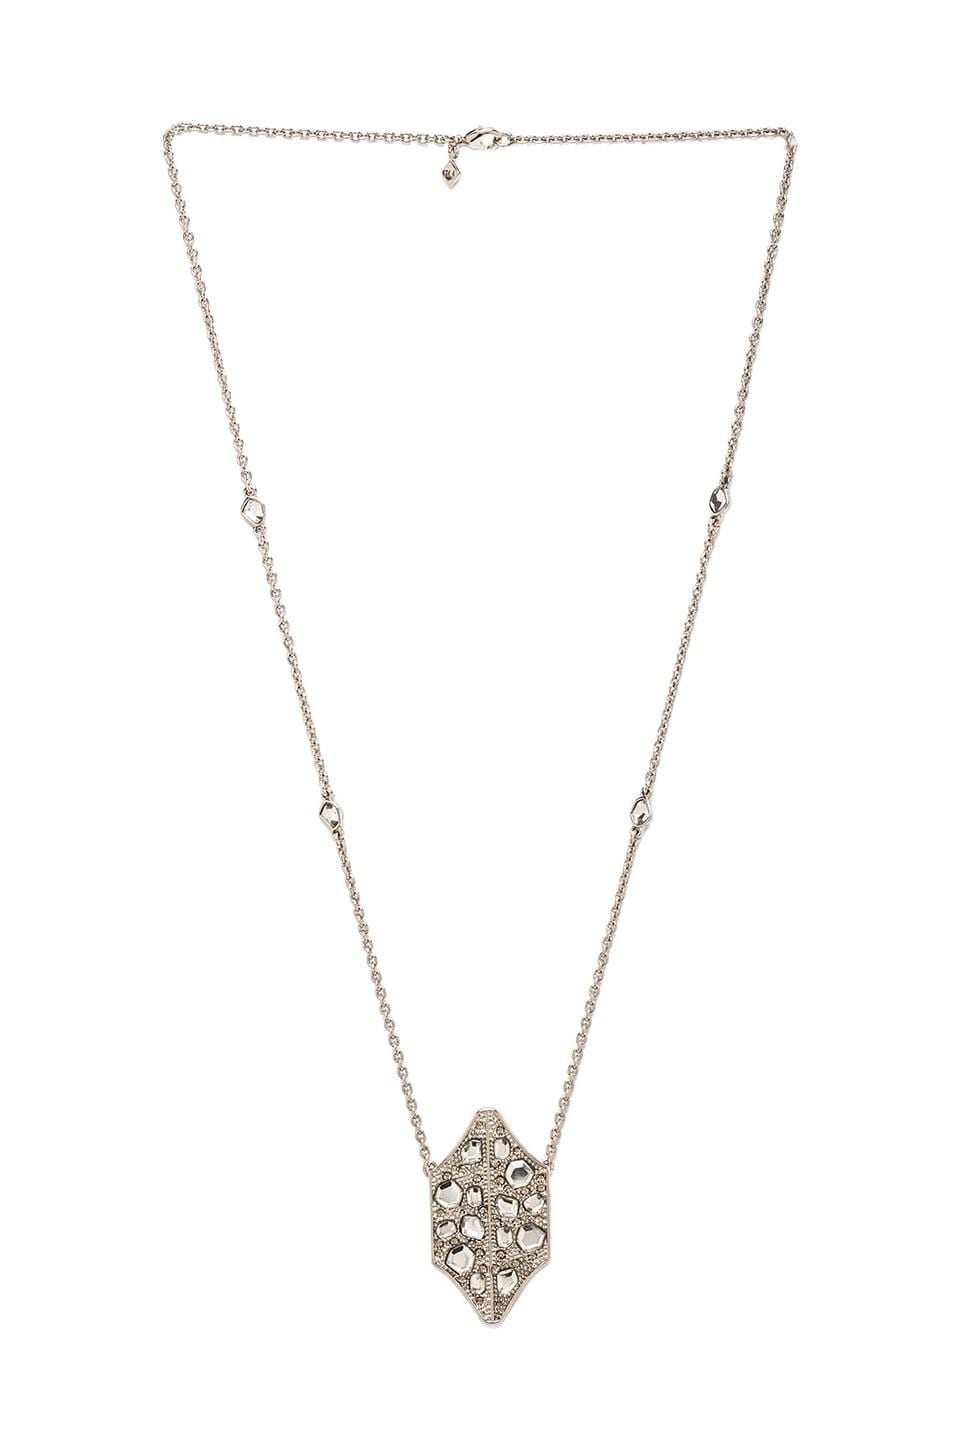 Rebecca Minkoff Mirrored Stone Necklace in Rhodium